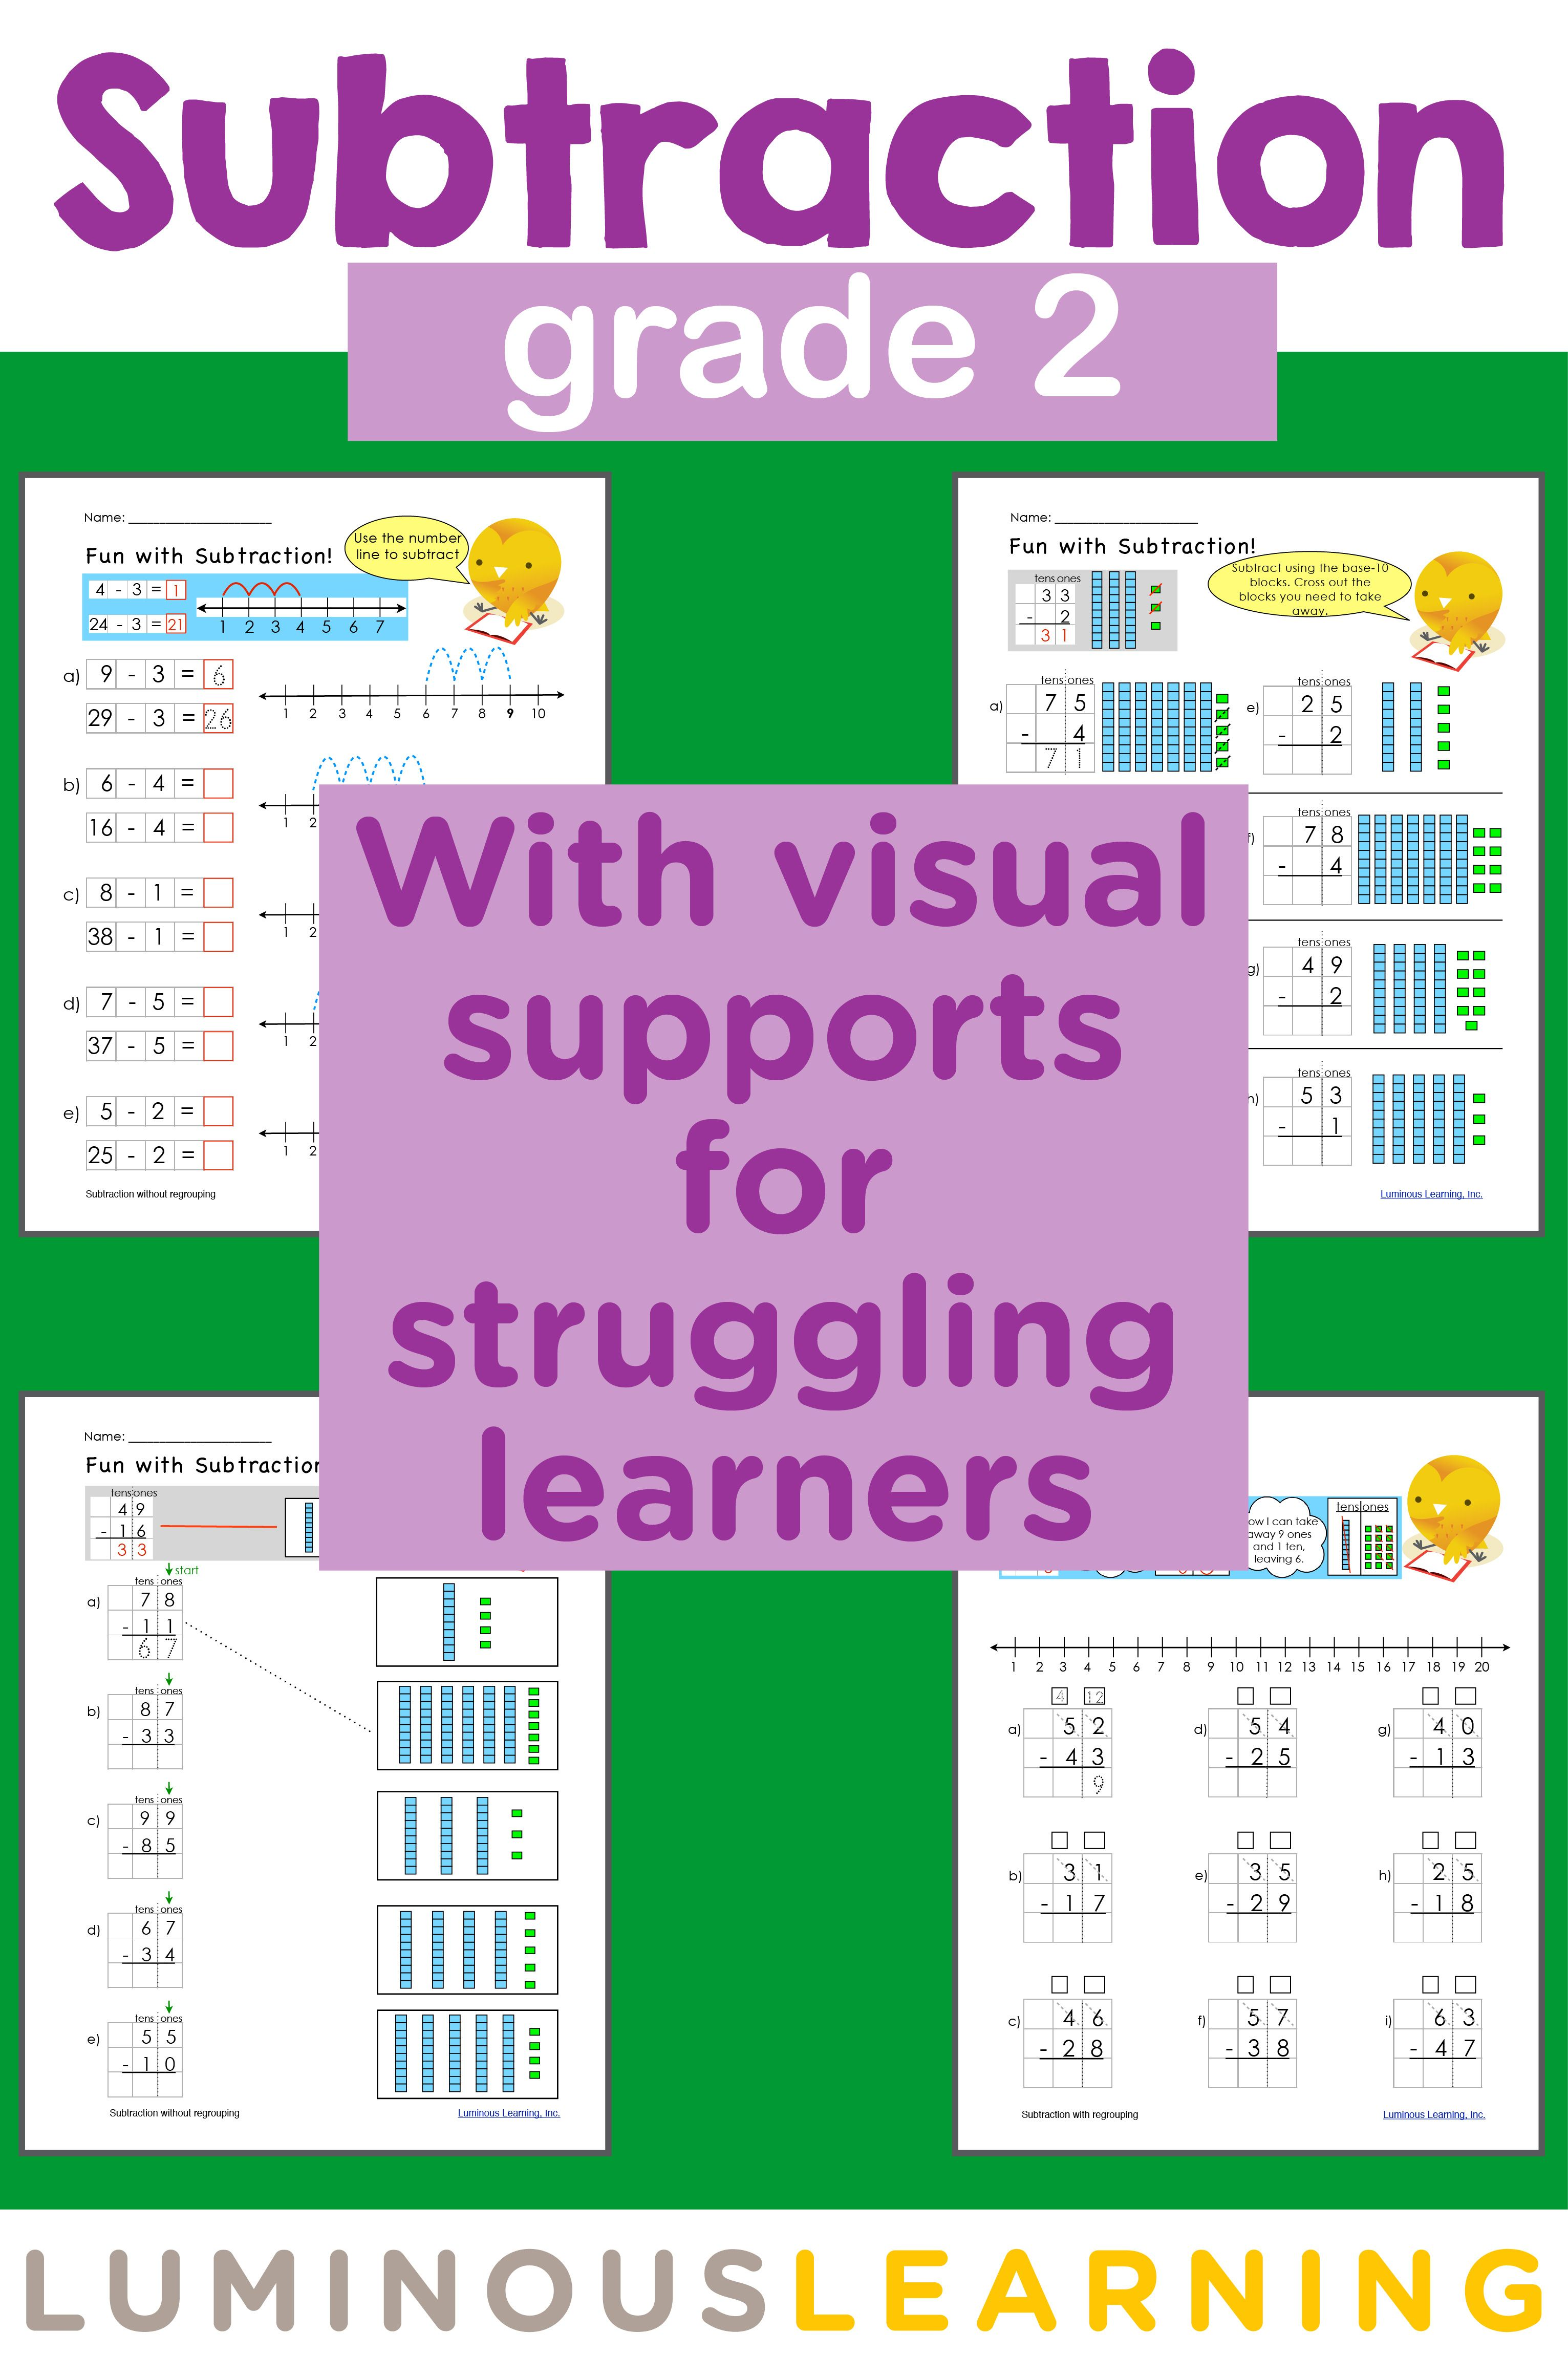 Luminous Learning Grade 2 Subtraction Workbook Empowers Struggling Learners By Providing Built